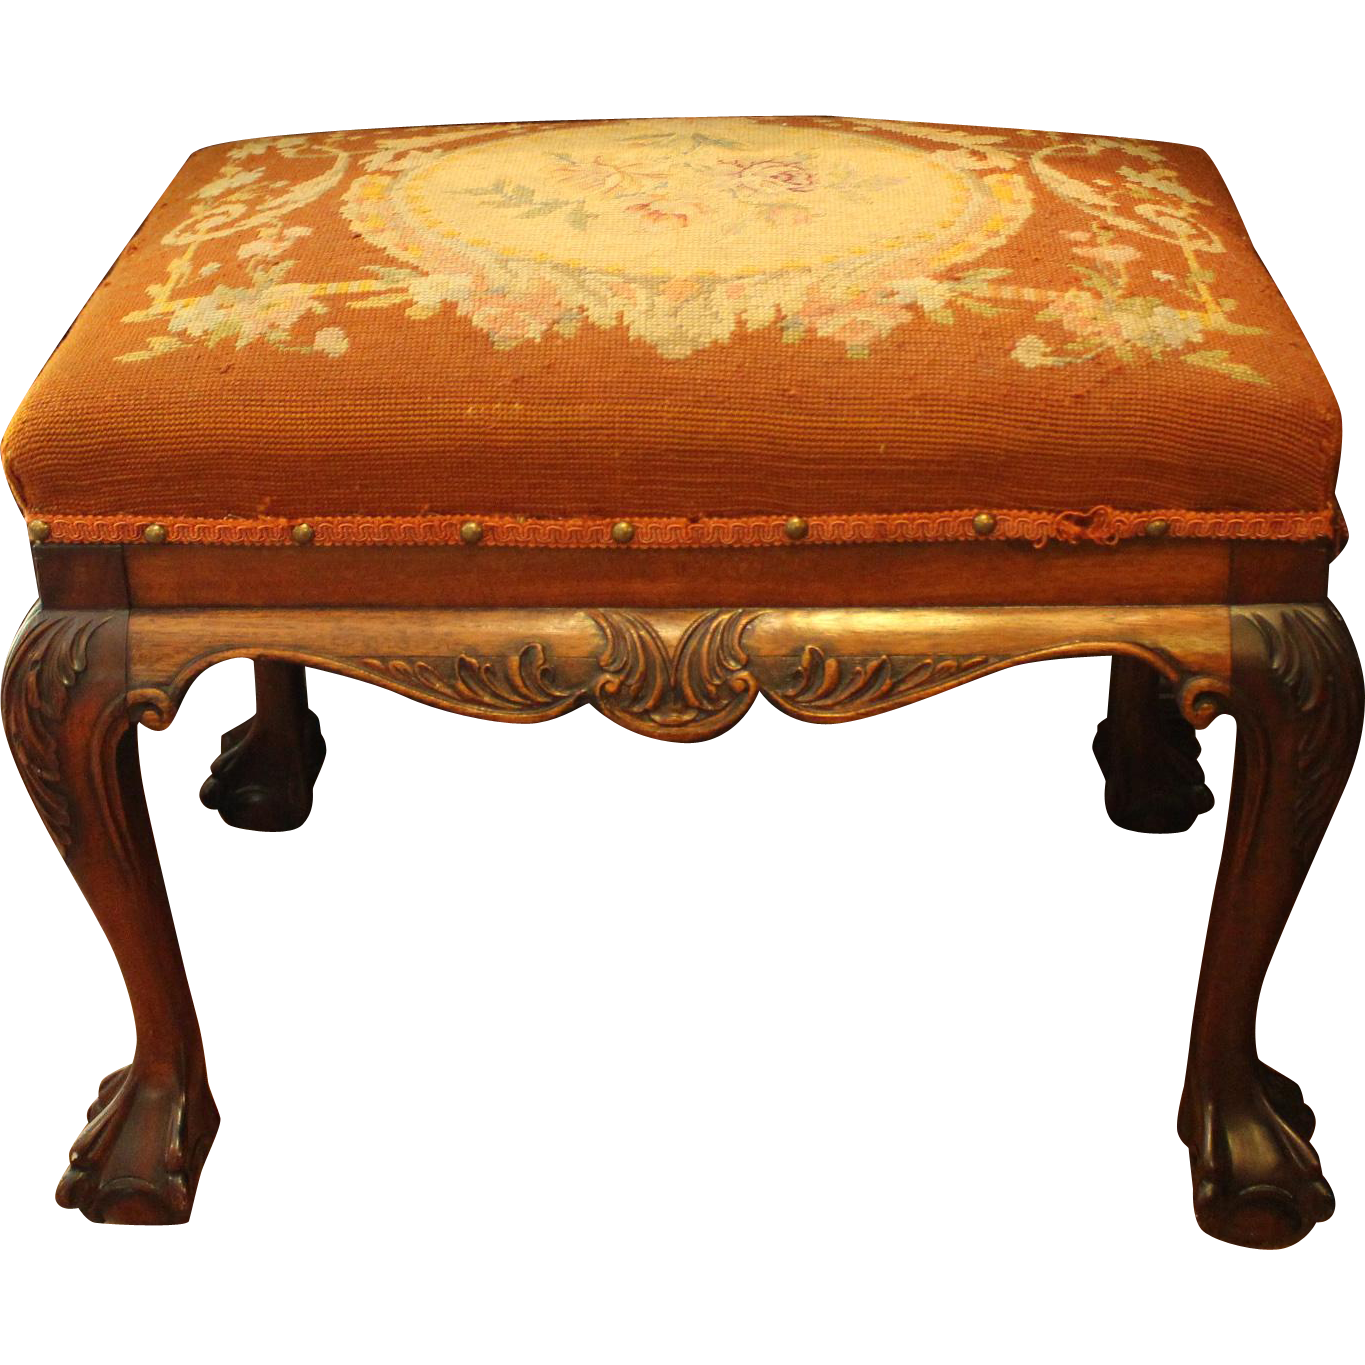 Chippendale Revival Bench With Needlework From Whitehall Antiques On Ruby Lane